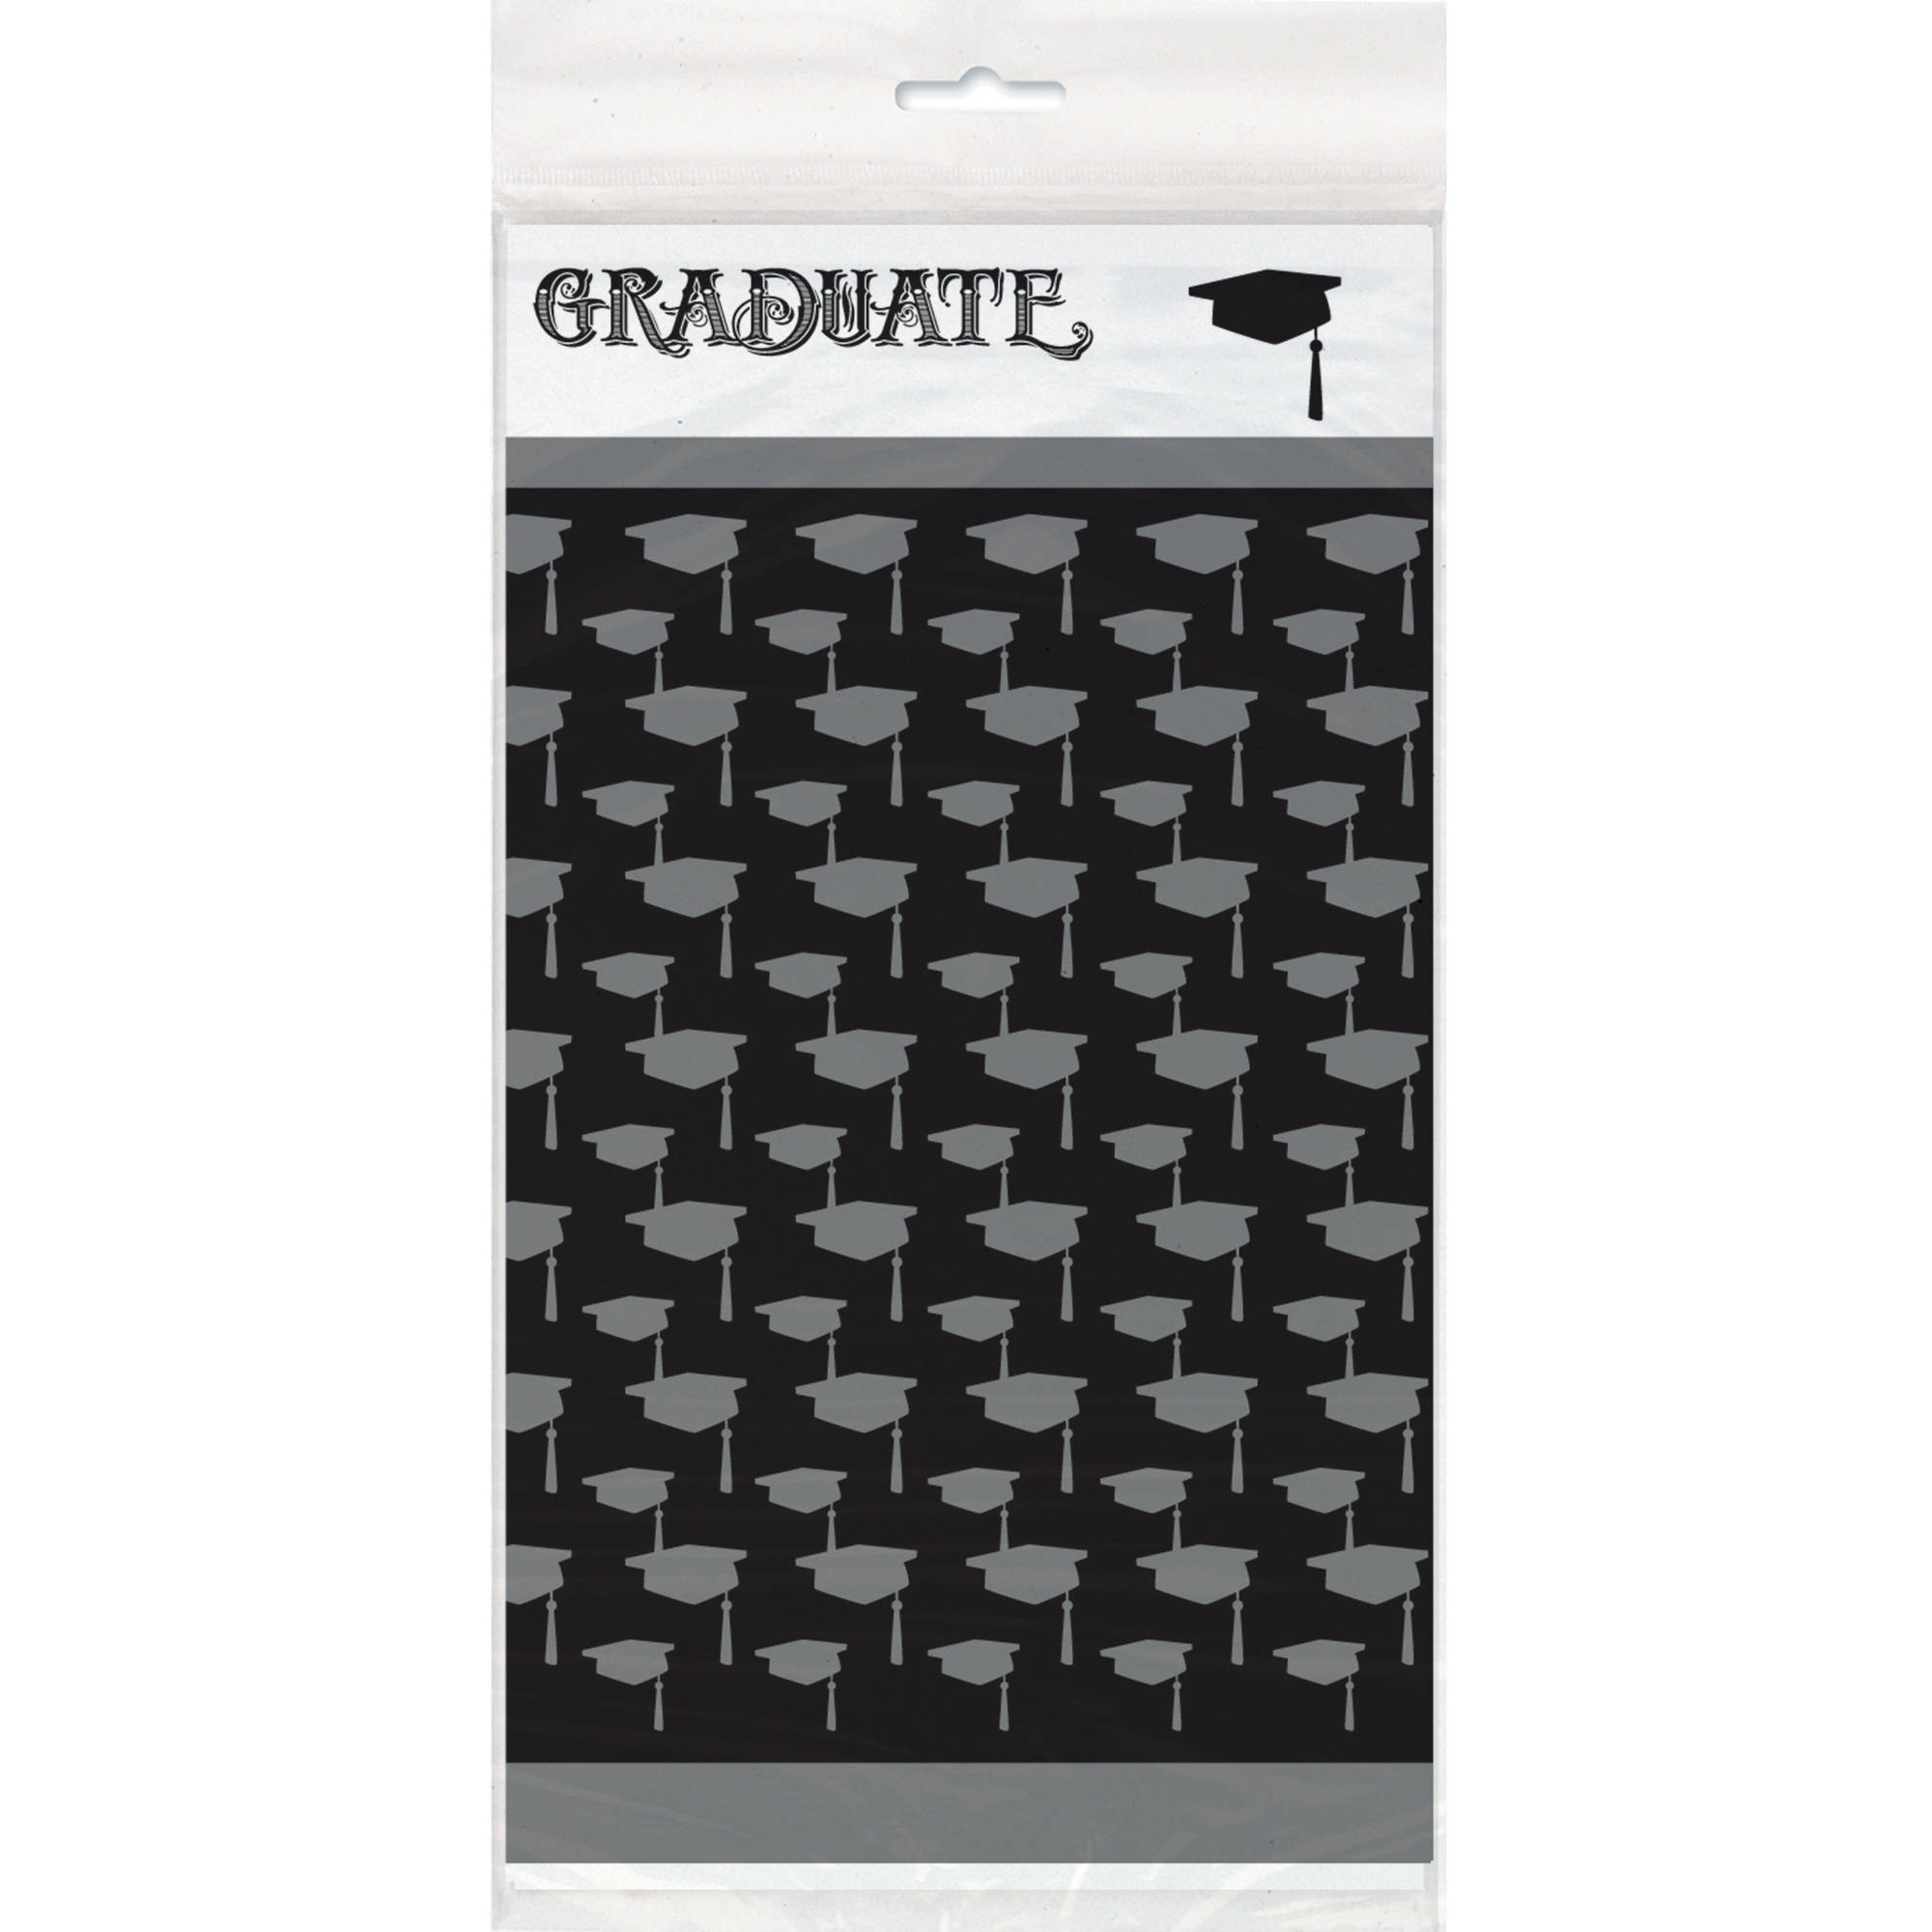 Classic Graduation Plastic Tablecloth, 84 x 54 in, 1ct